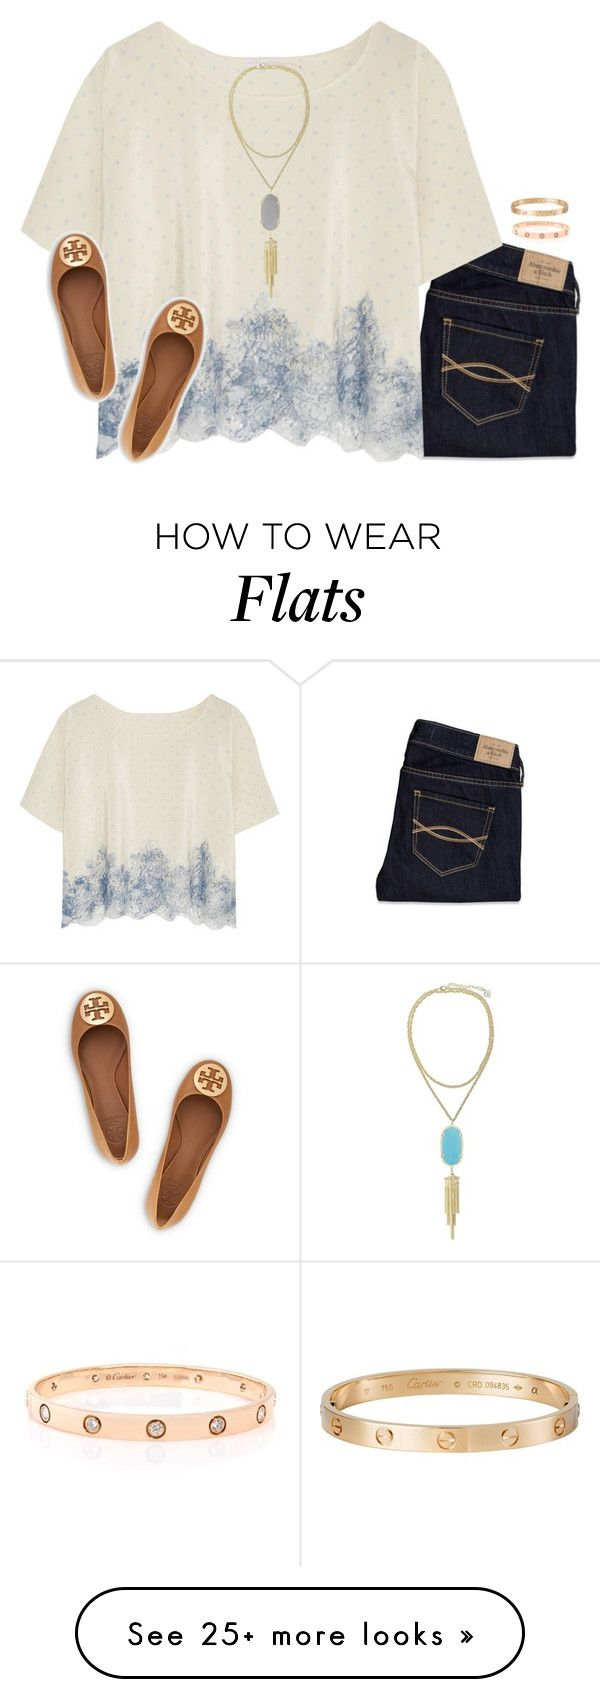 """""""watching old himym episodes"""" by serenag123 on Polyvore featuring Abercrombie & Fitch, Rosamosario, Cartier, Kendra Scott and Tory Burch"""